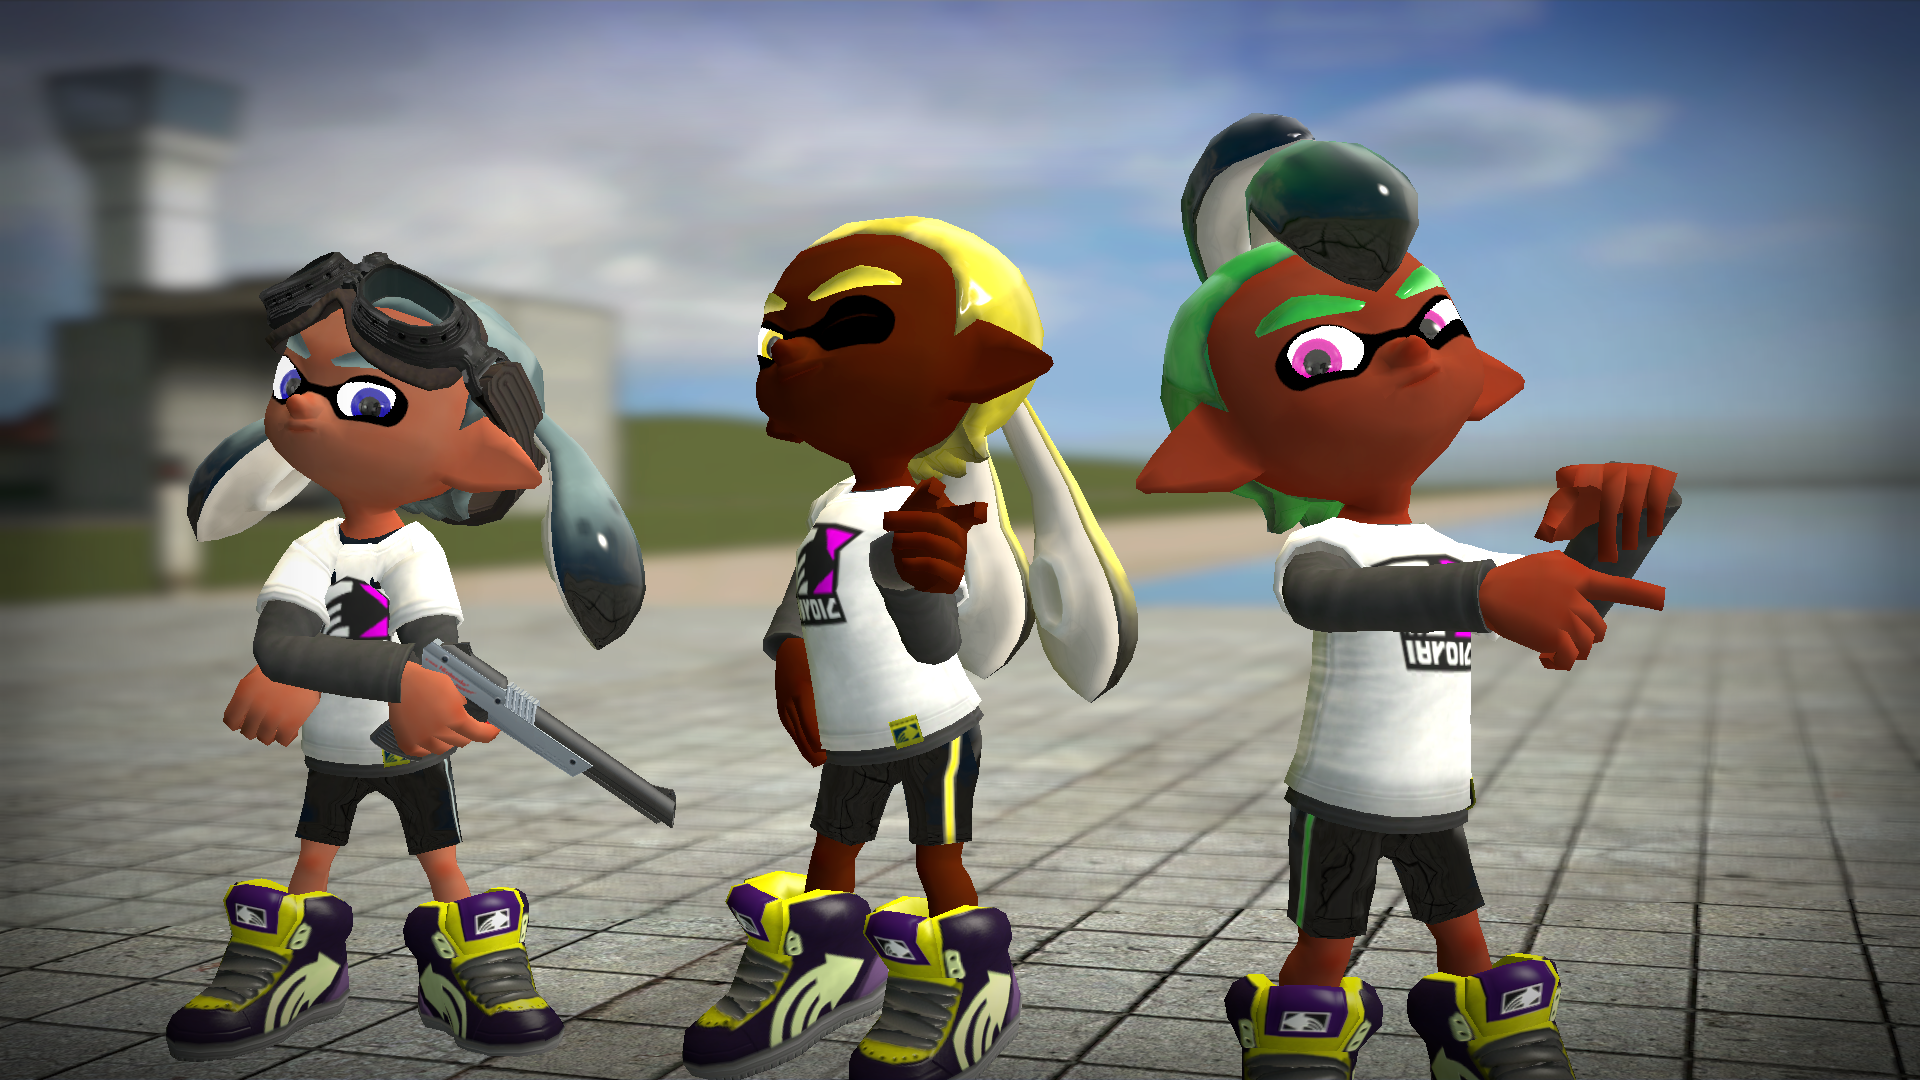 Latest Hair Styles For Boys In 2014 2: New Hairstyles For Inkling Boys.